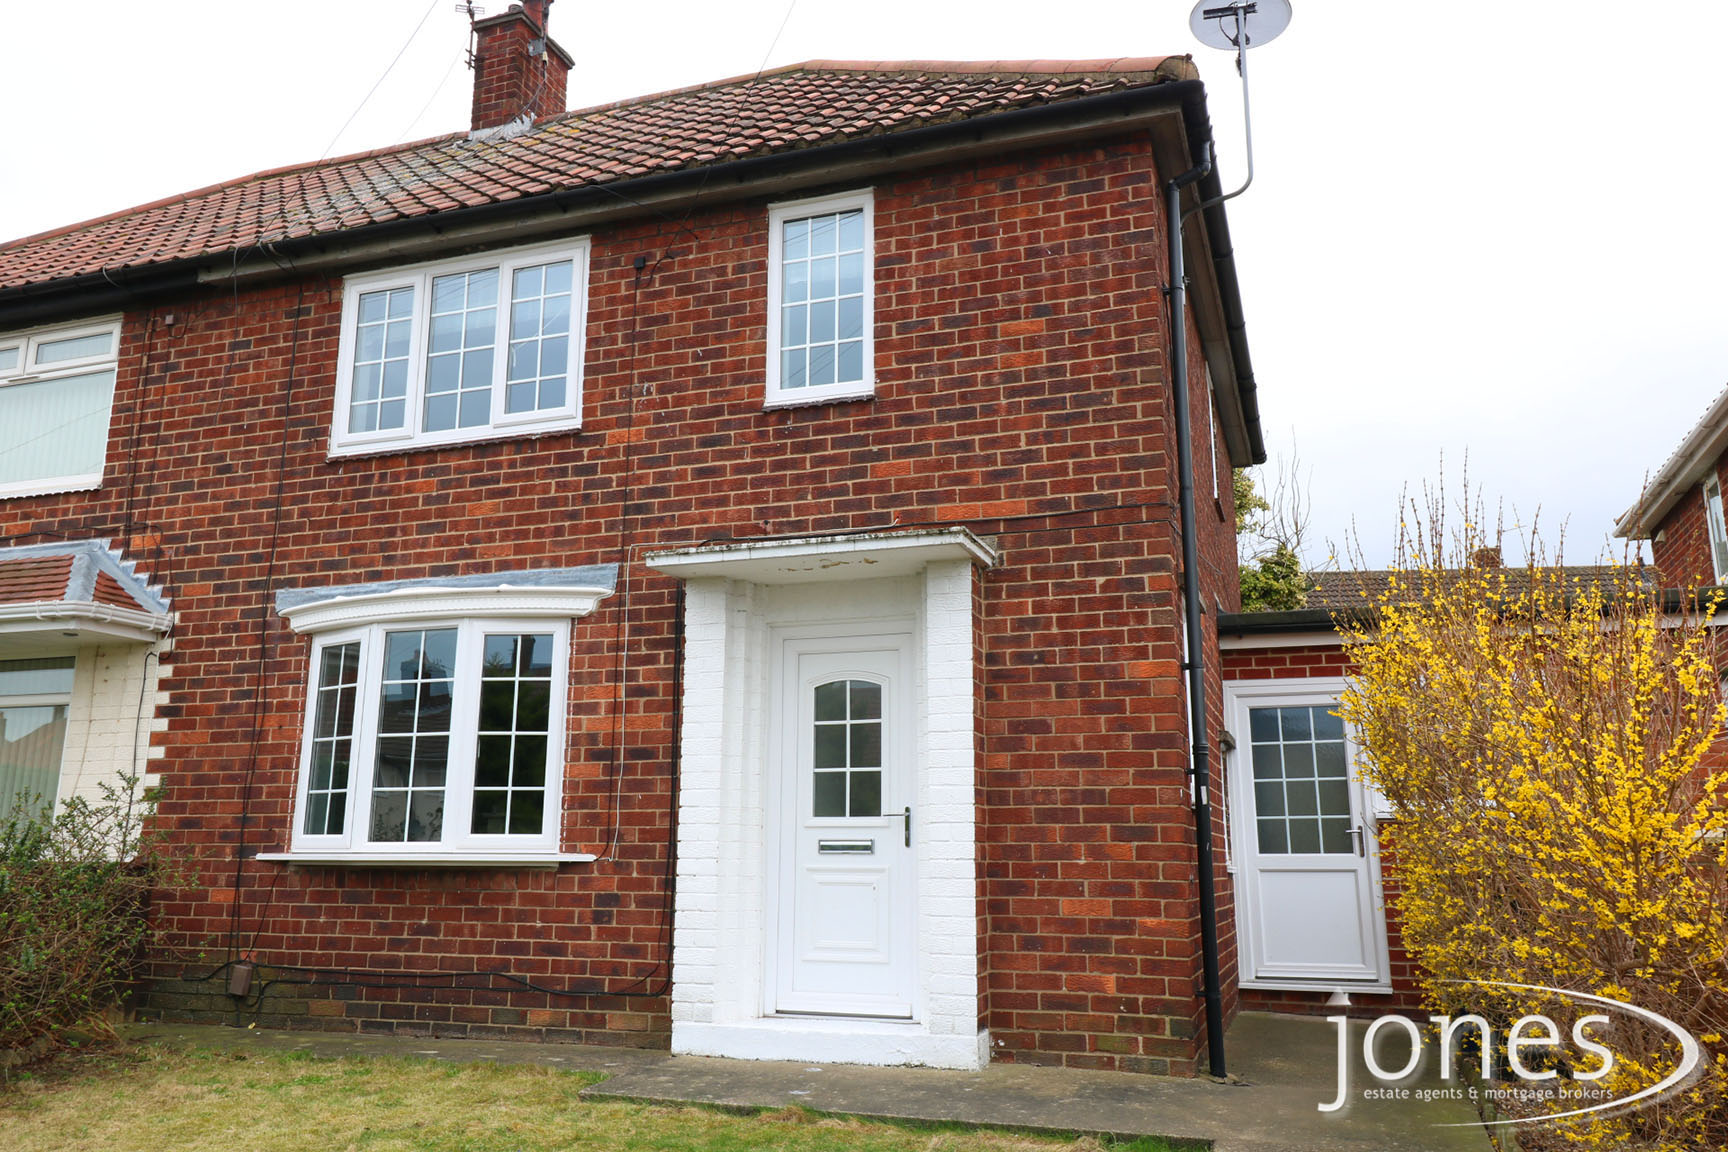 Home for Sale Let - Photo 01 Keats Road, Normanby, Middlesbrough, TS6 0RP